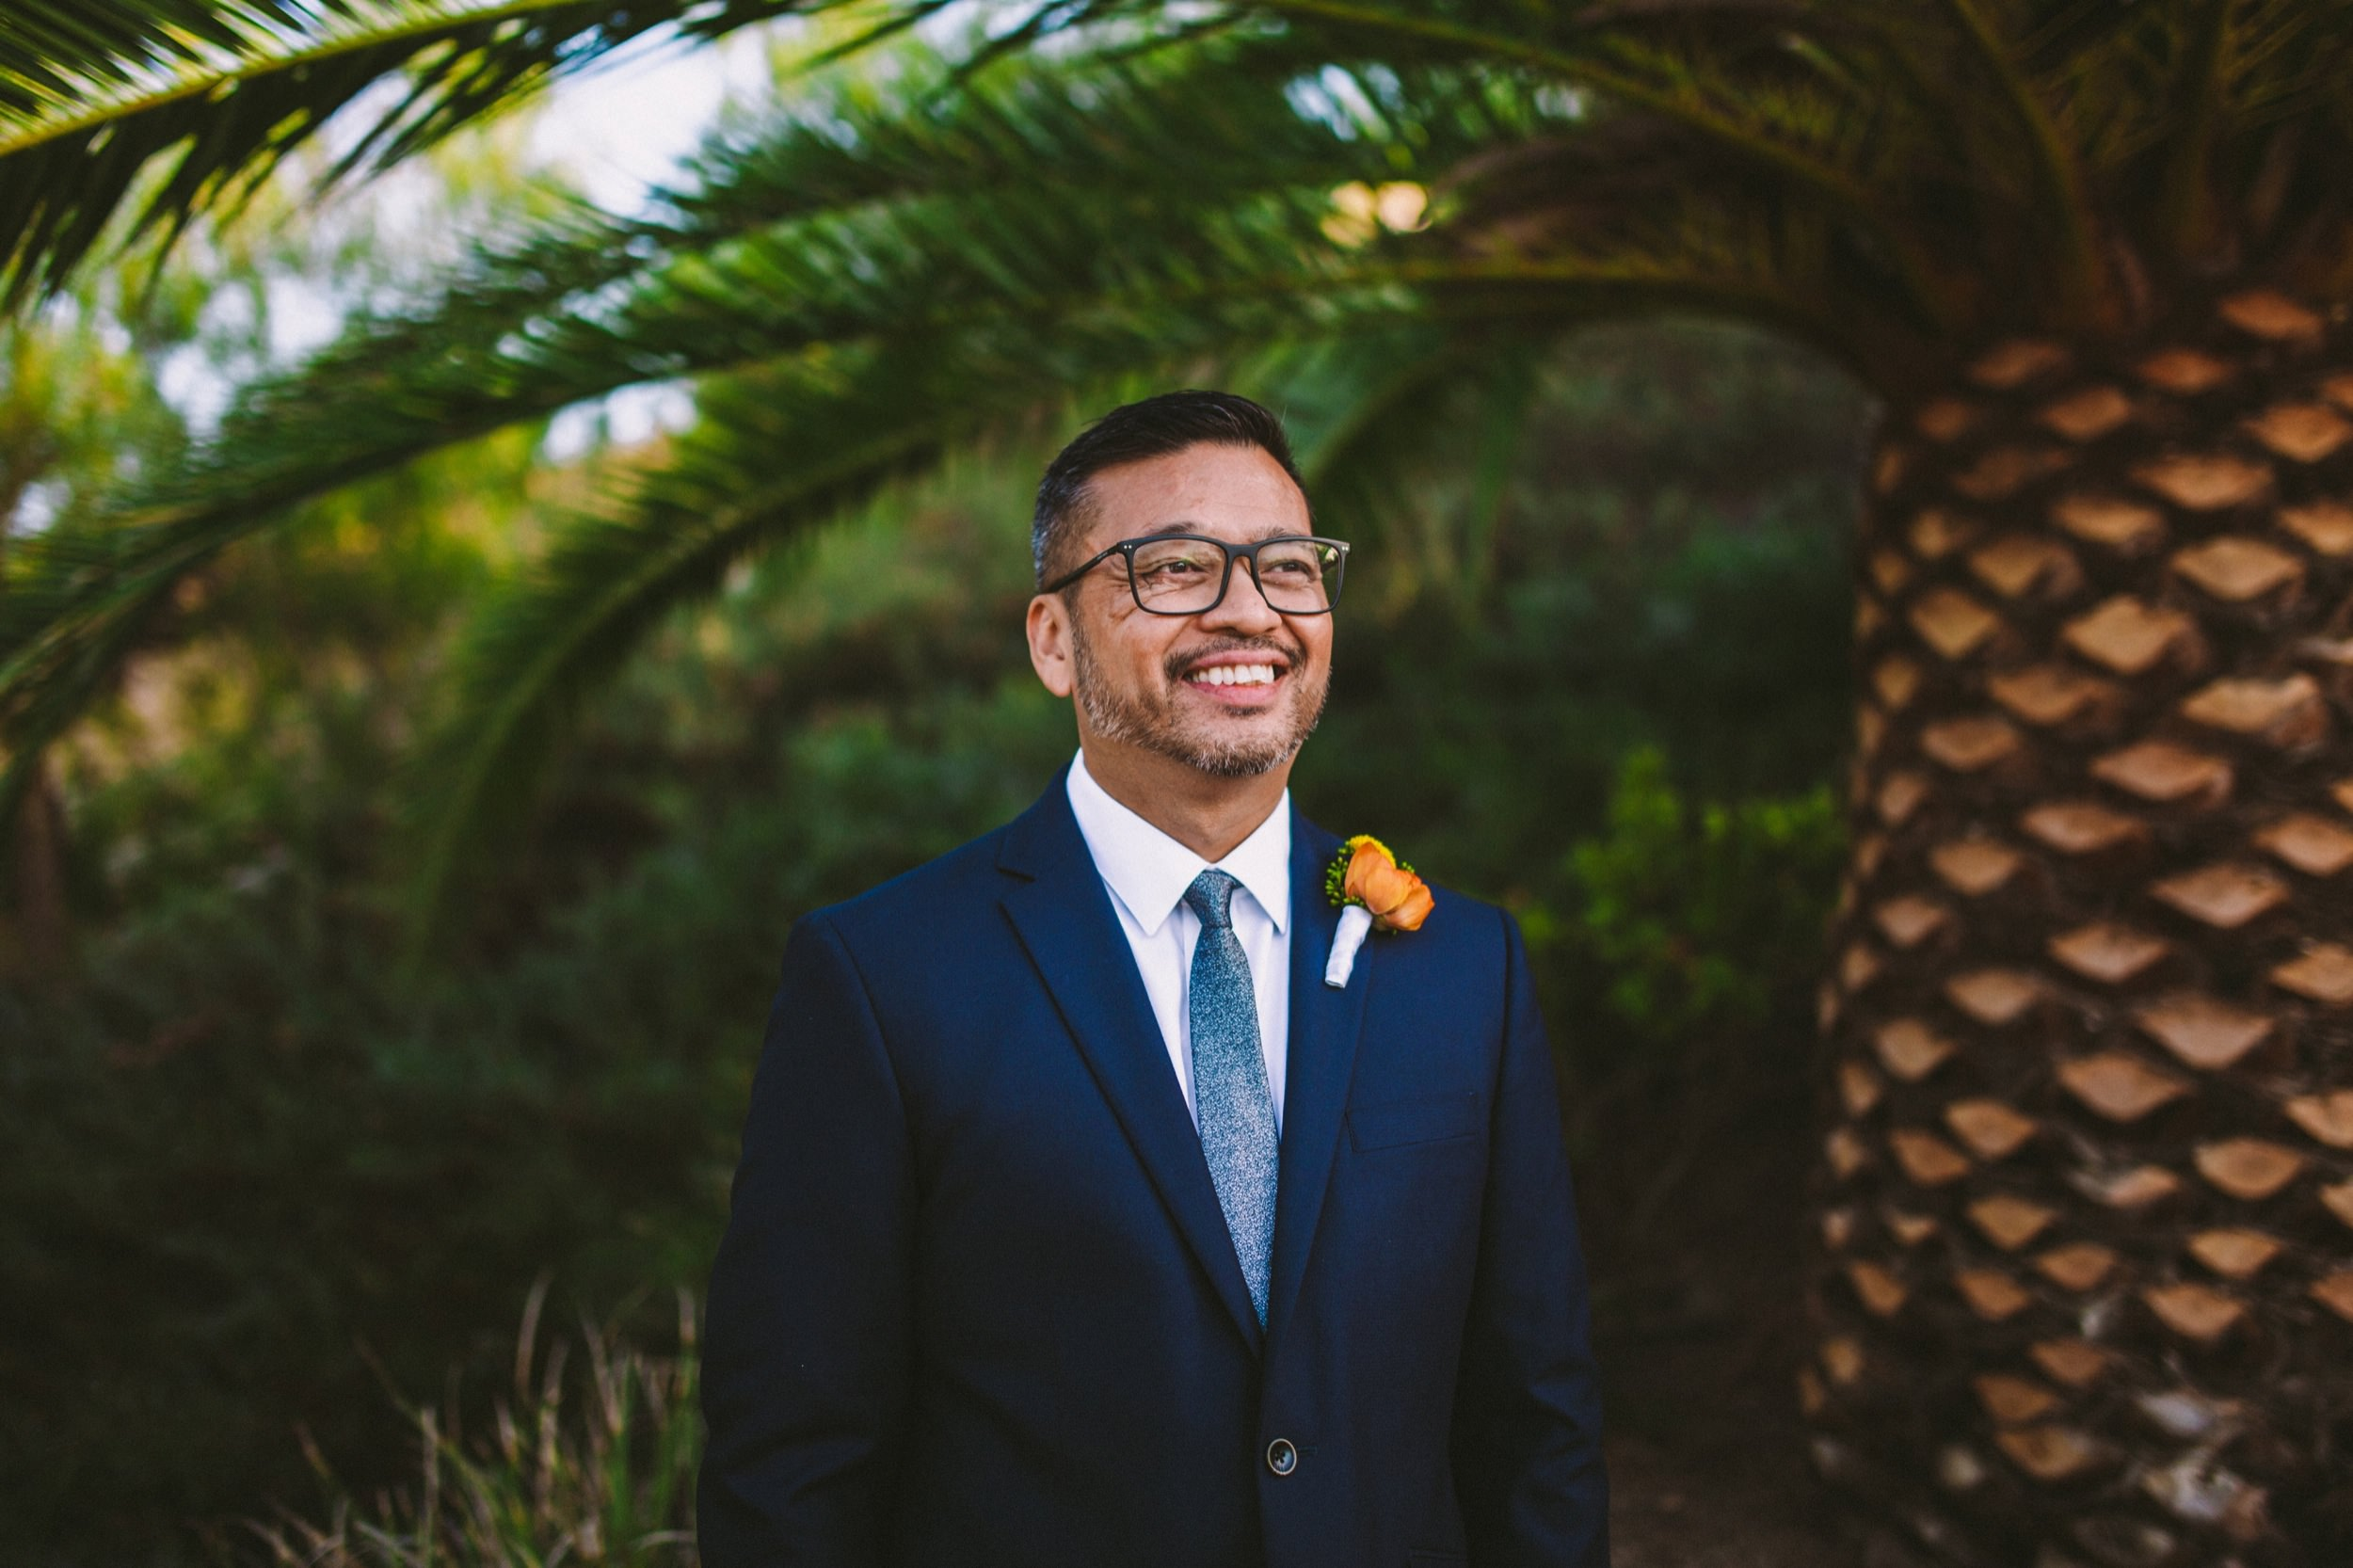 Intimate, Relaxed & Colorful Wedding Photography in Temecula-305.jpg